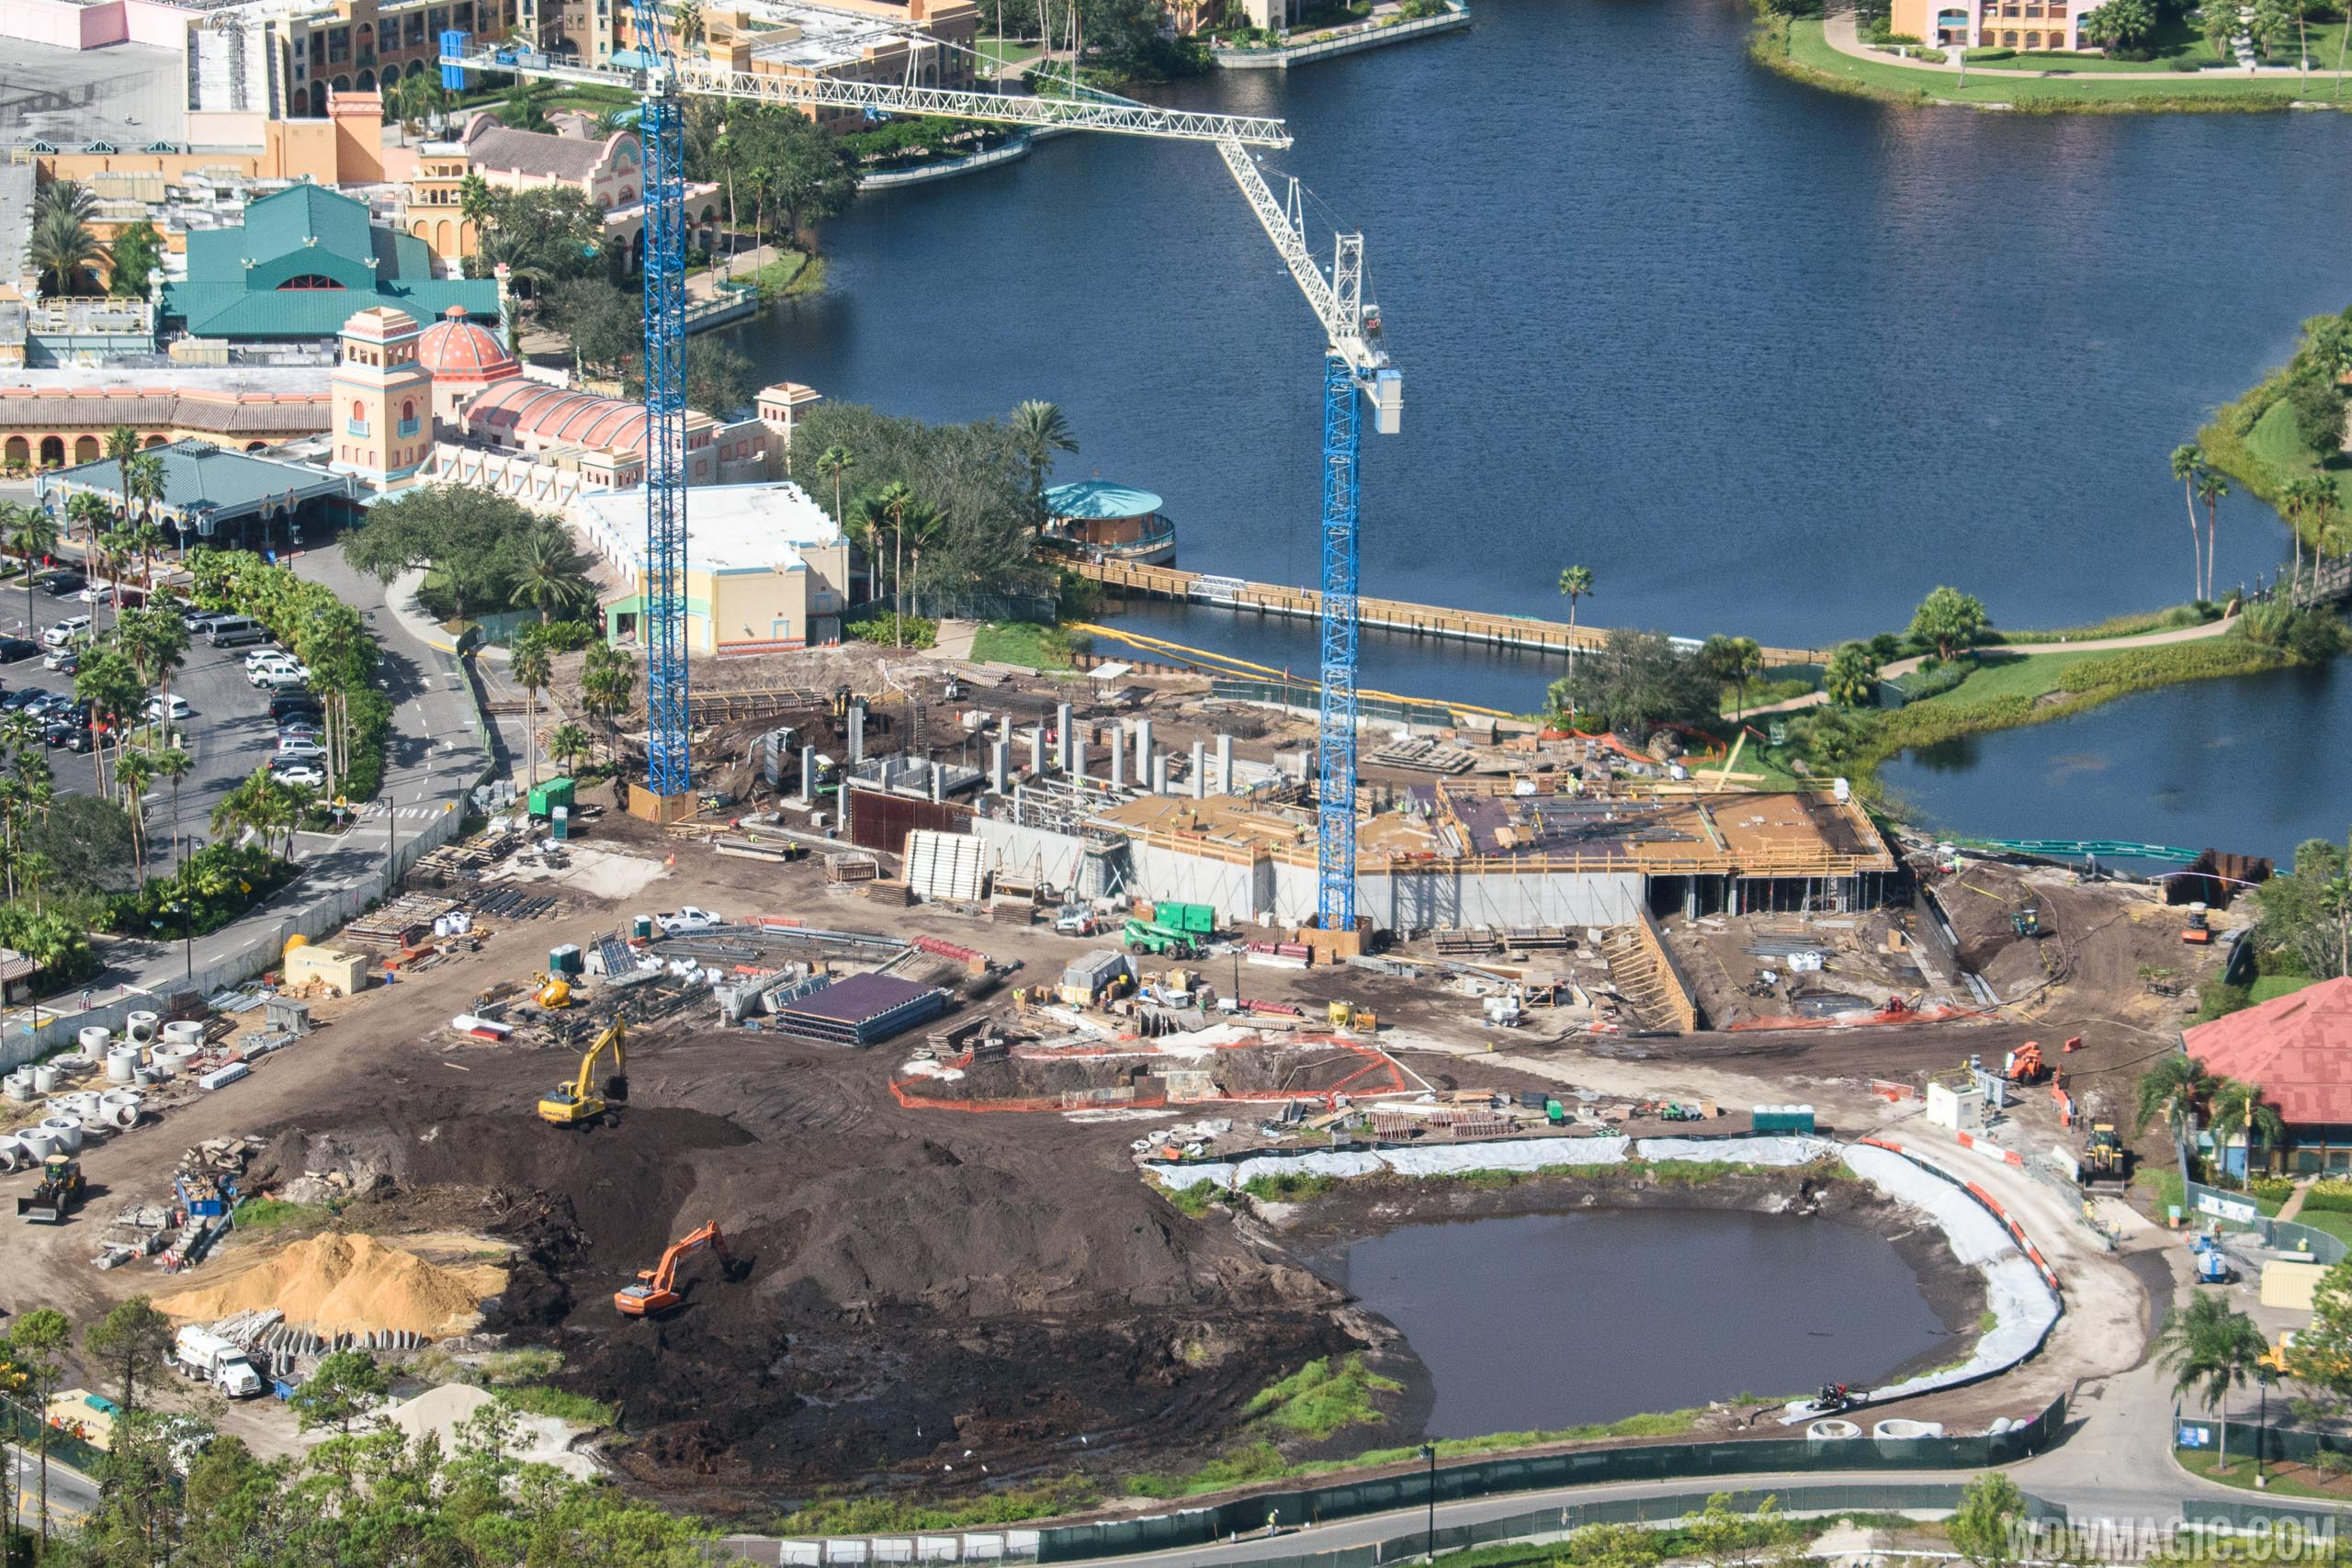 Coronado Springs Resort Tower construction